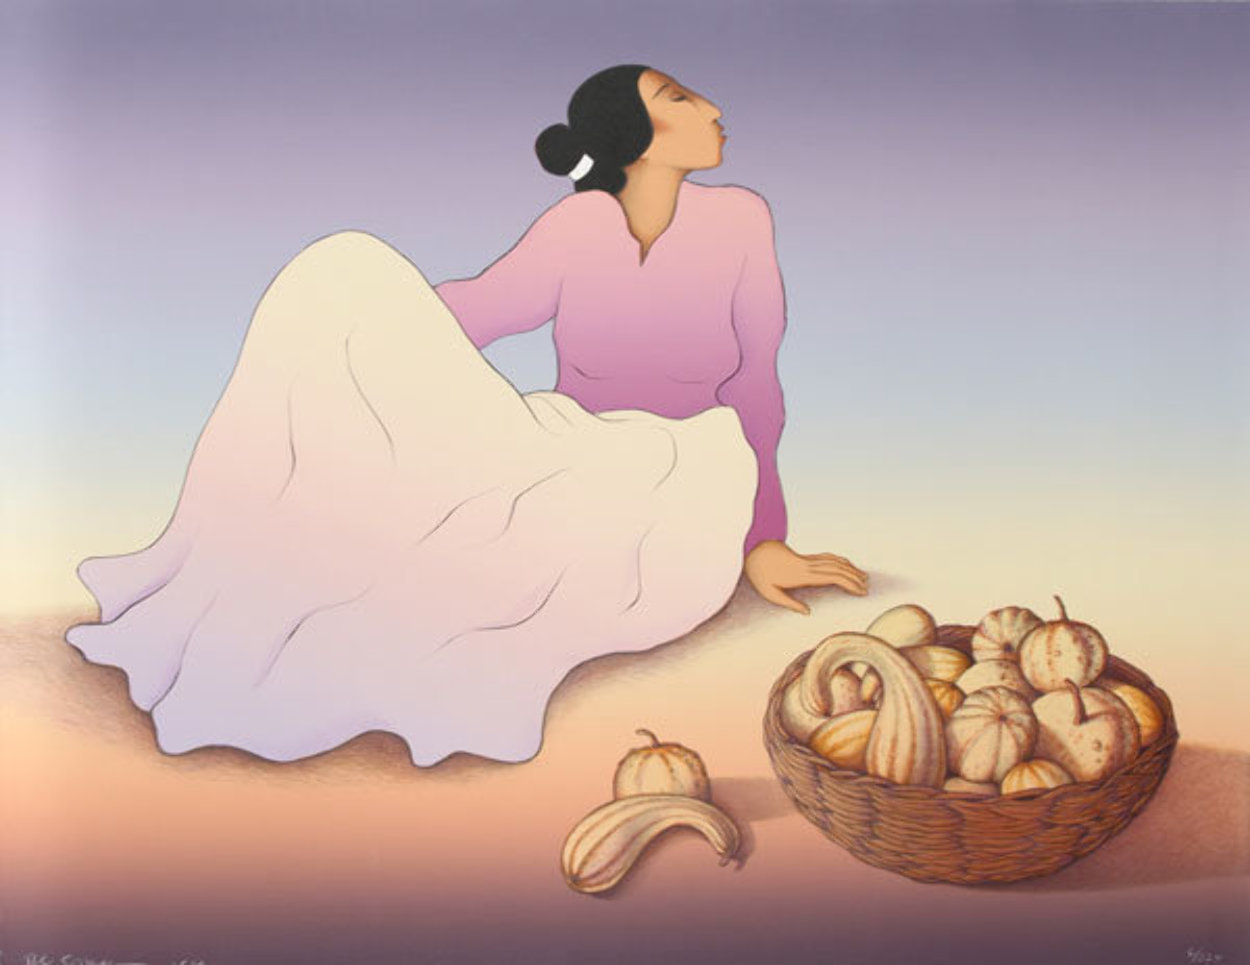 Woman With Gourds 1989 Limited Edition Print by R.C. Gorman